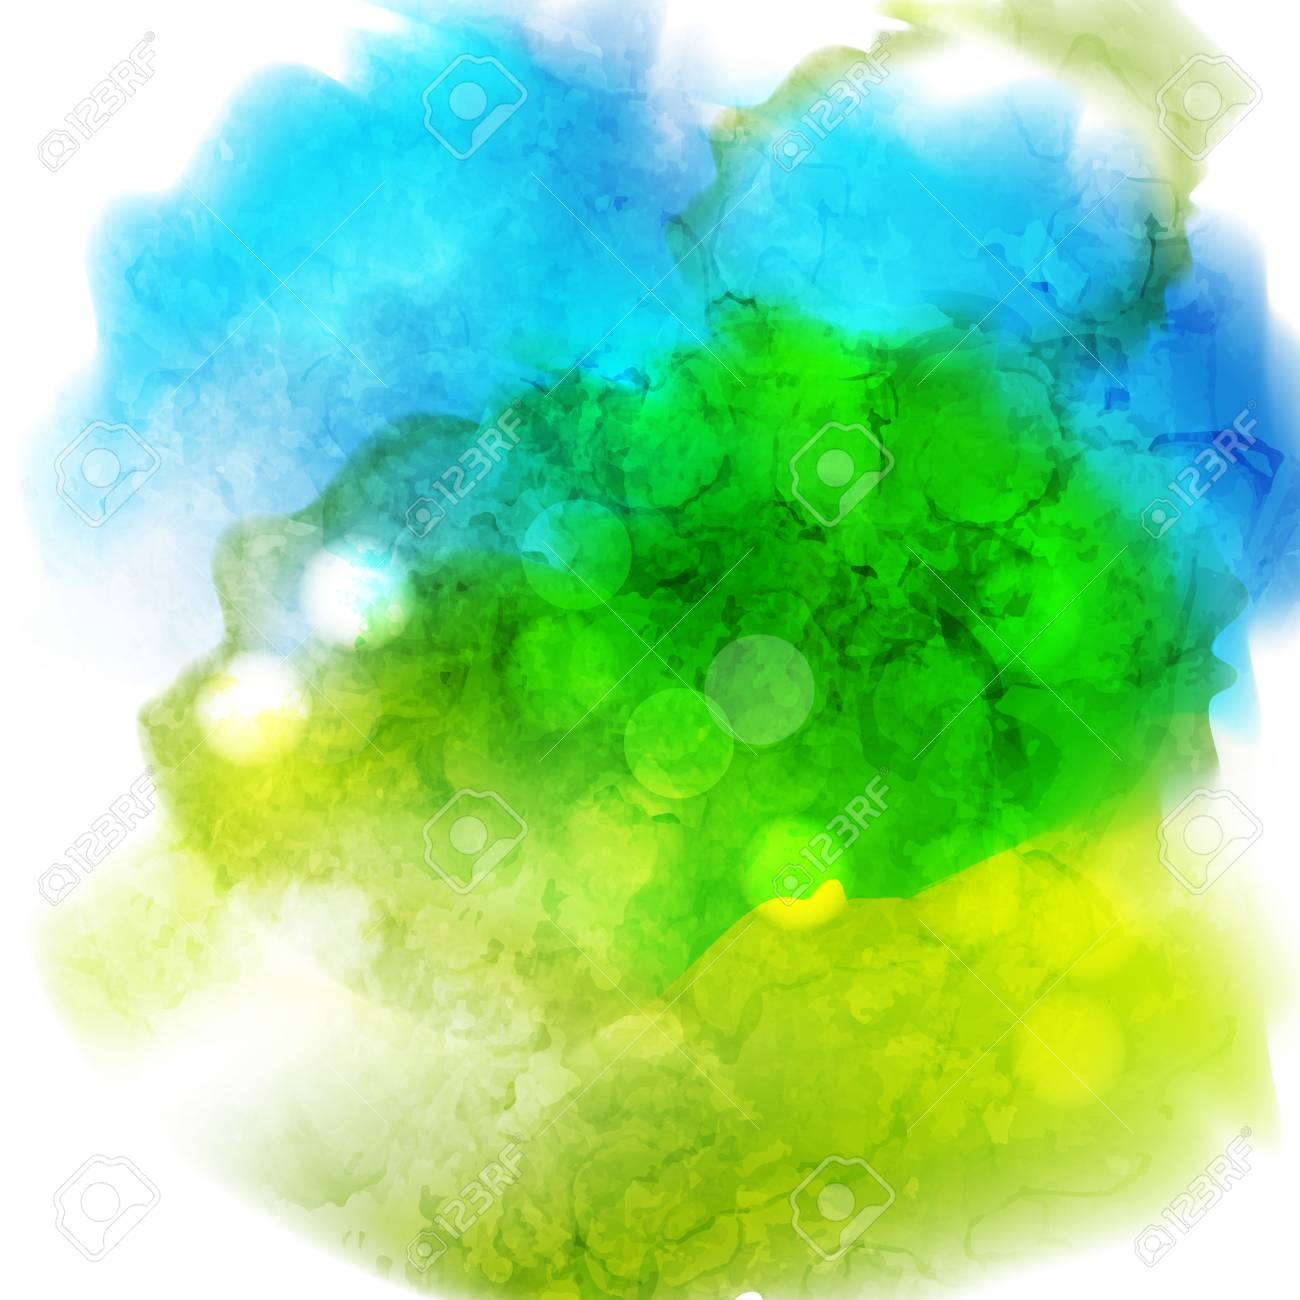 Green and blue watercolor background  Hand-drawn illustration